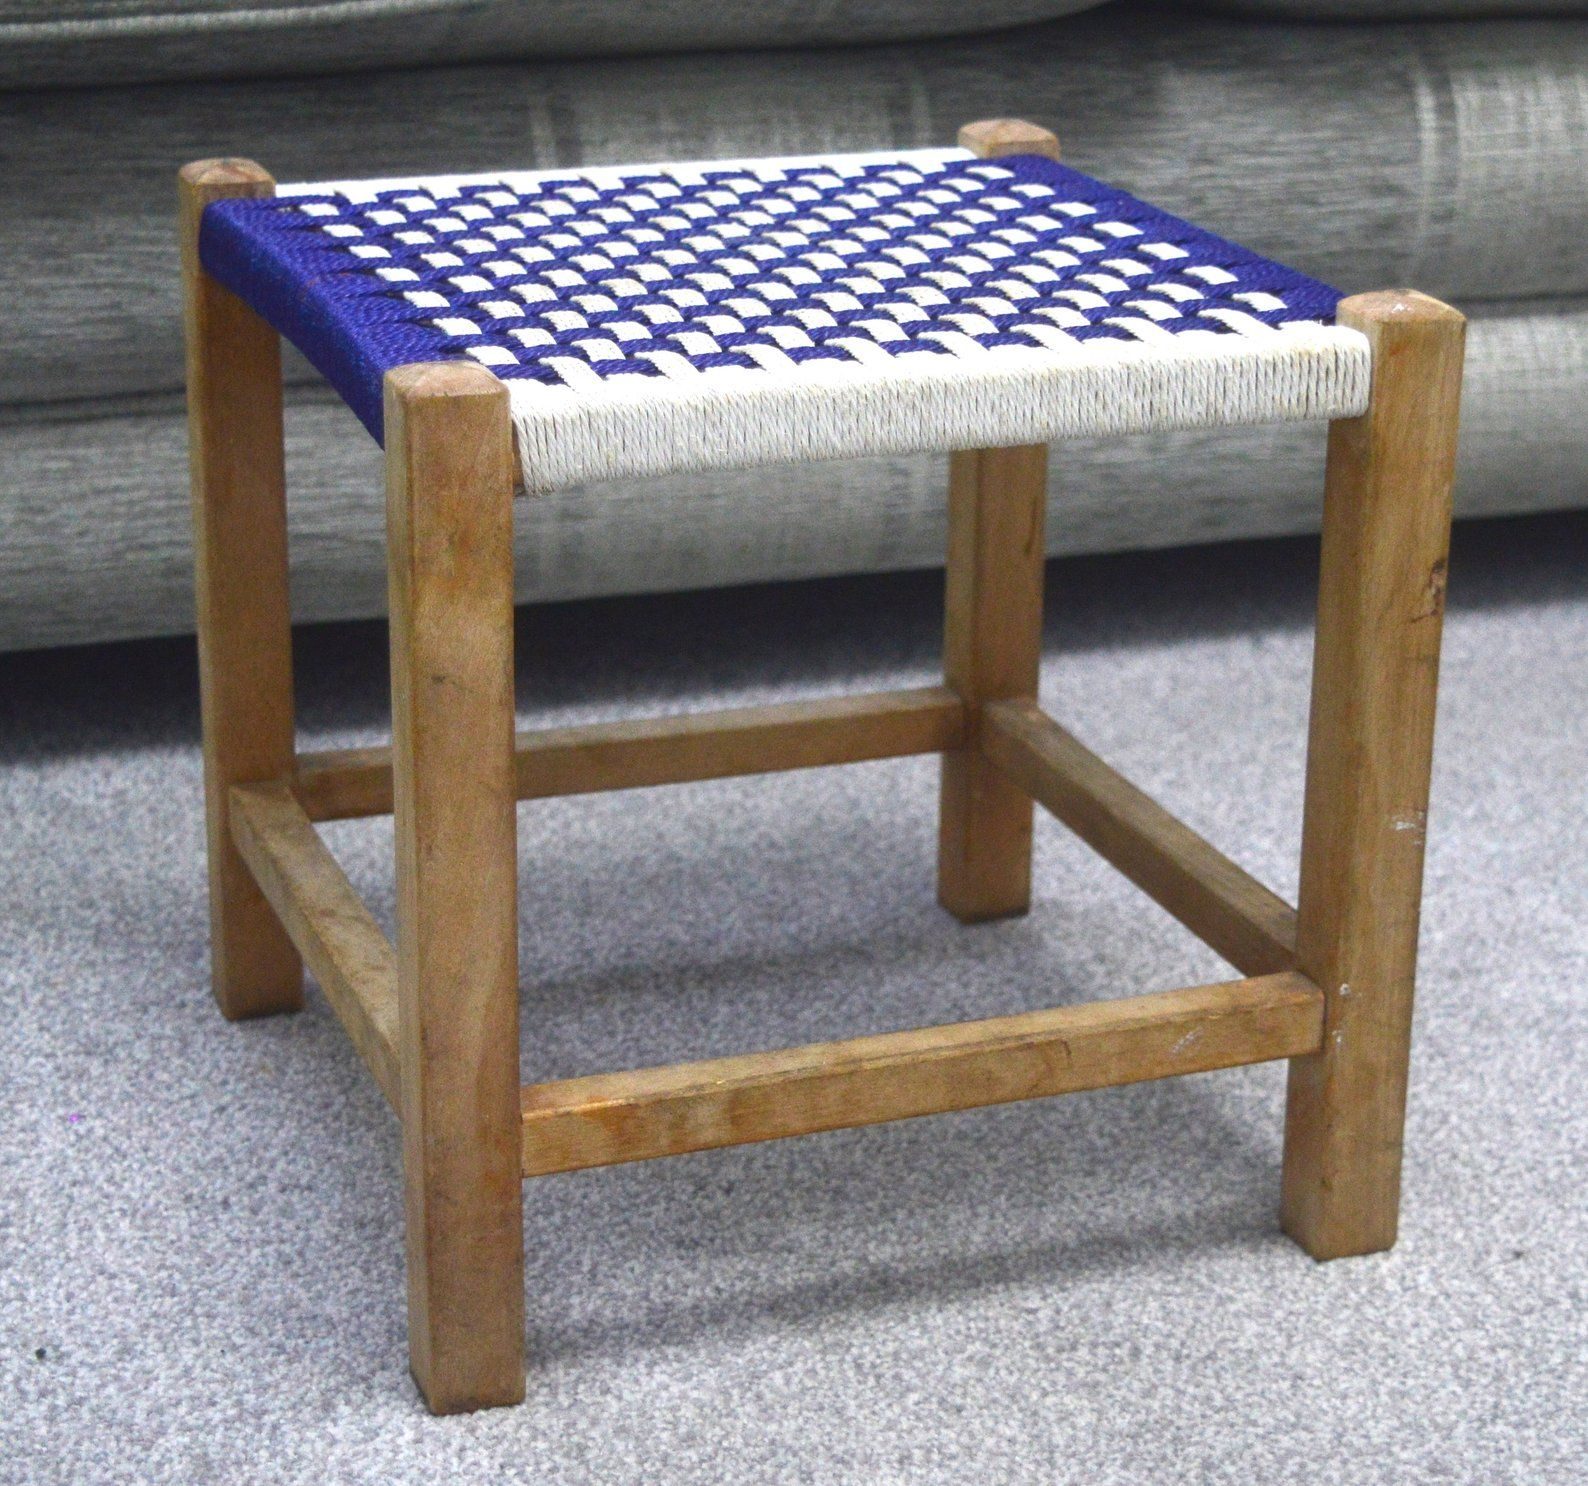 Miraculous 1970S Blue Woven Footstool Mid Century Footstool Vintage Pdpeps Interior Chair Design Pdpepsorg